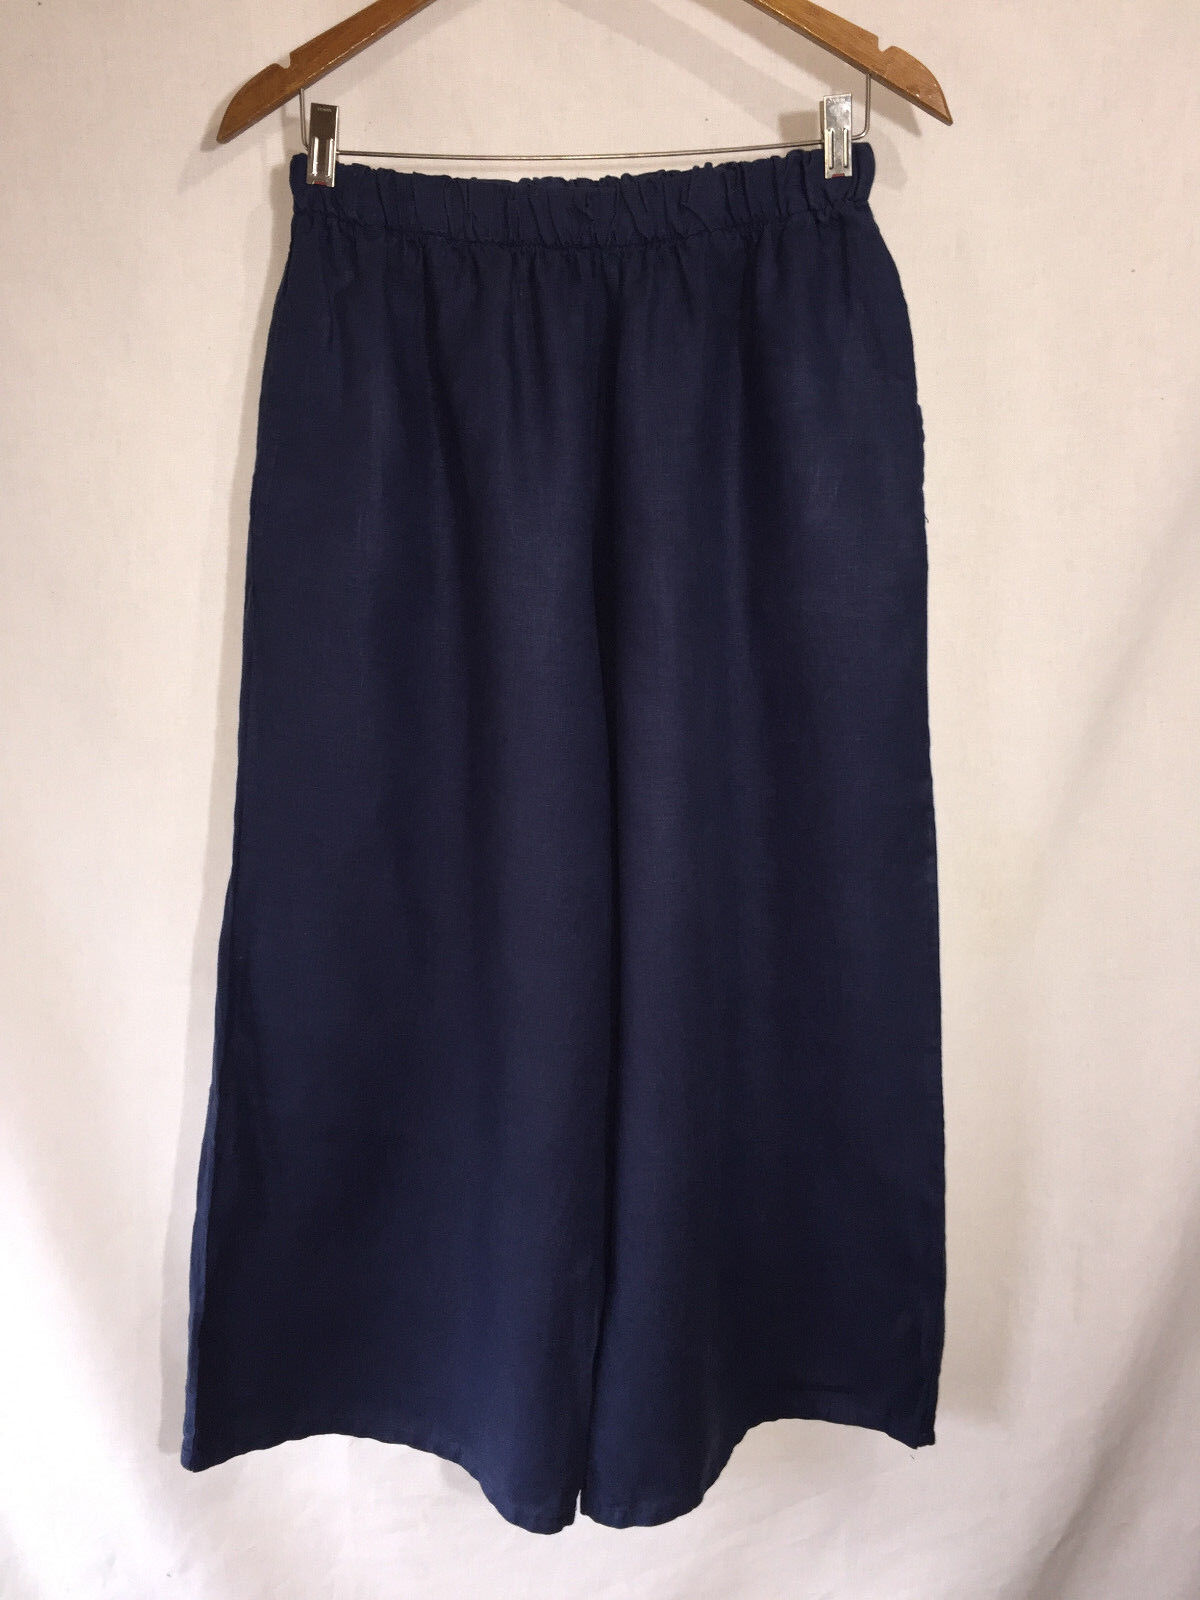 Bryn Walker Simple Comfortable bluee Linen Wide Leg Floods Pants Lagenlook S EUC